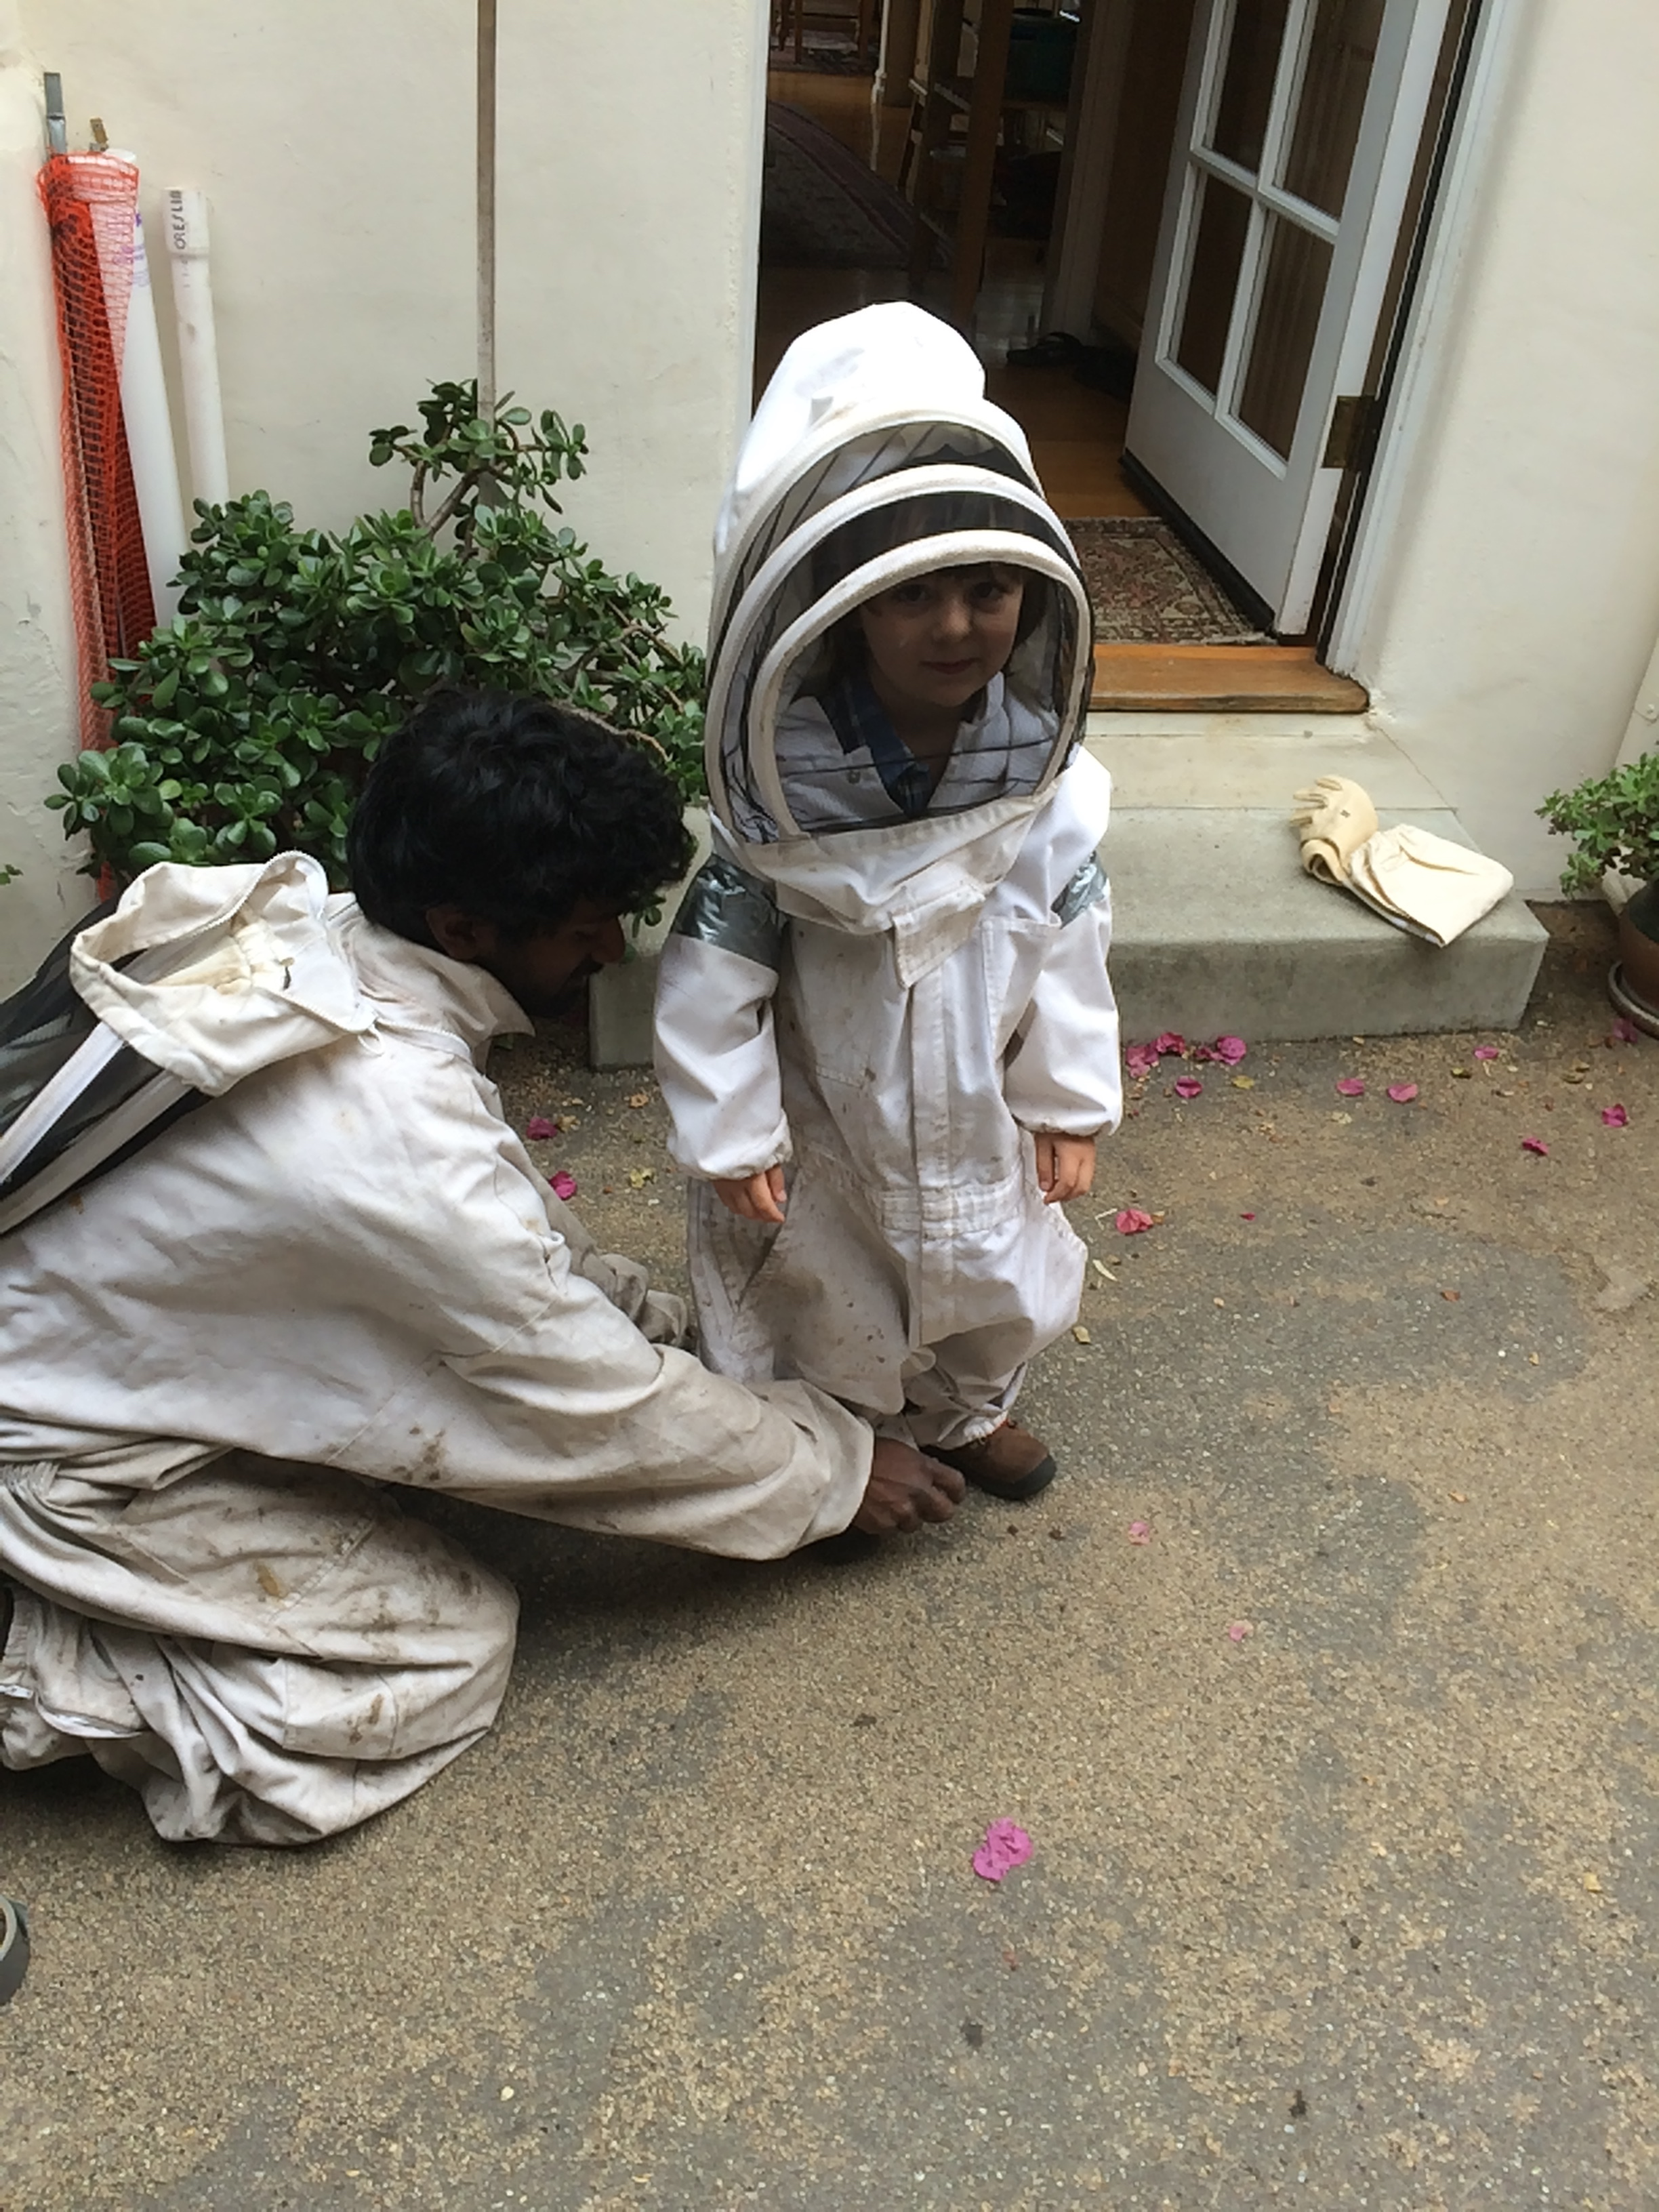 Cute kid in a bee suit